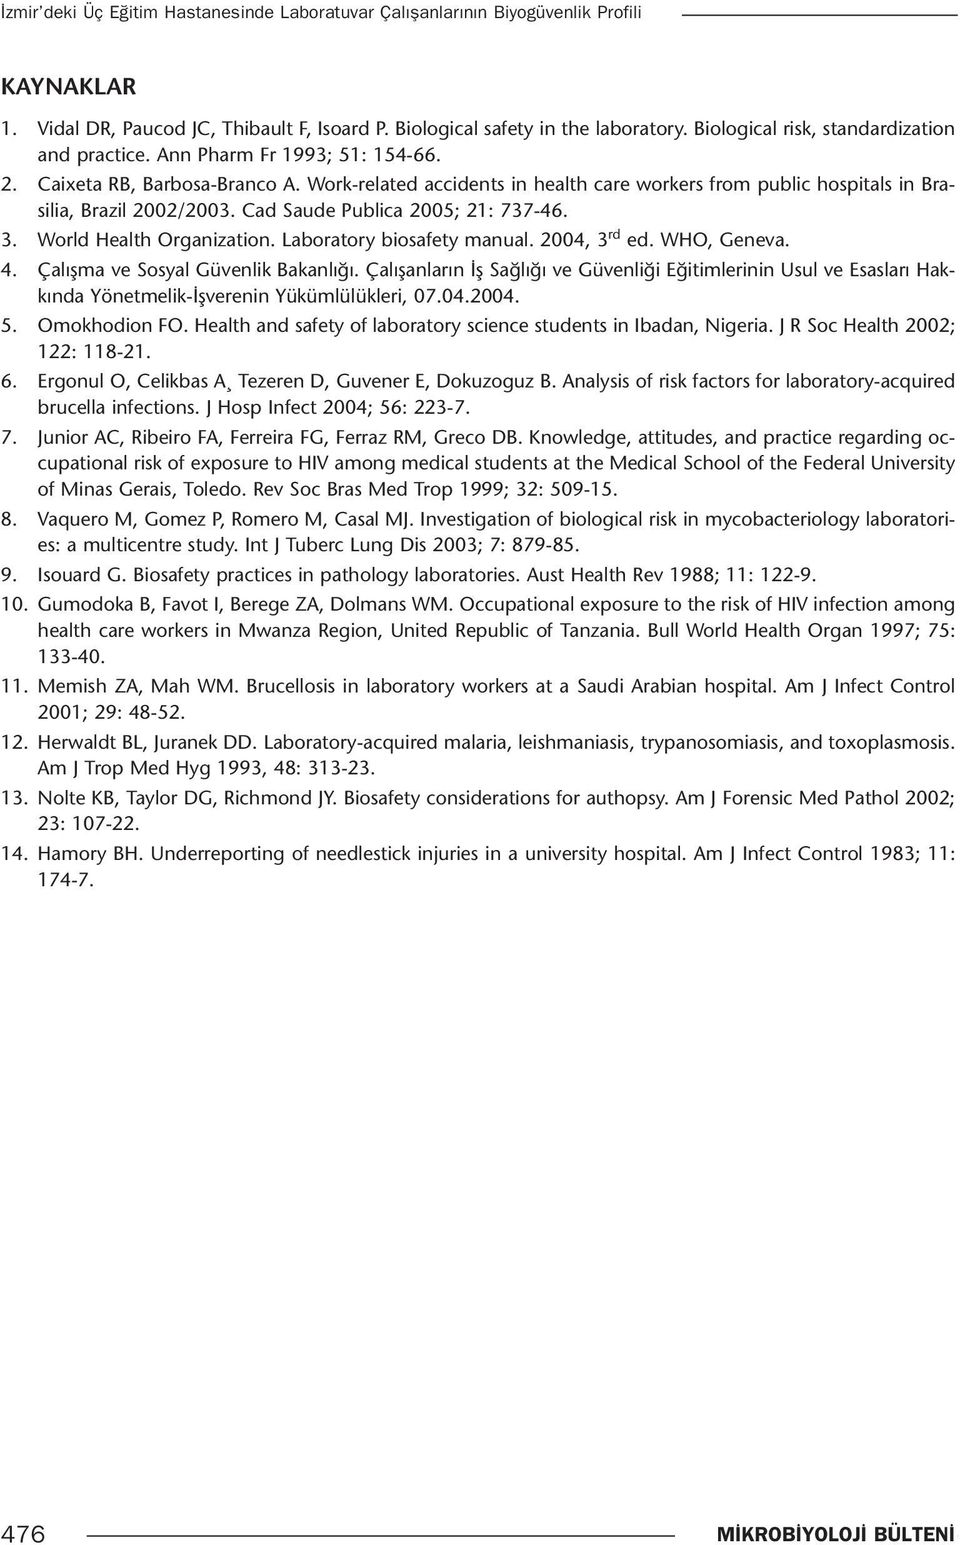 Work-related accidents in health care workers from public hospitals in Brasilia, Brazil 2002/2003. Cad Saude Publica 2005; 21: 737-46. 3. World Health Organization. Laboratory biosafety manual.